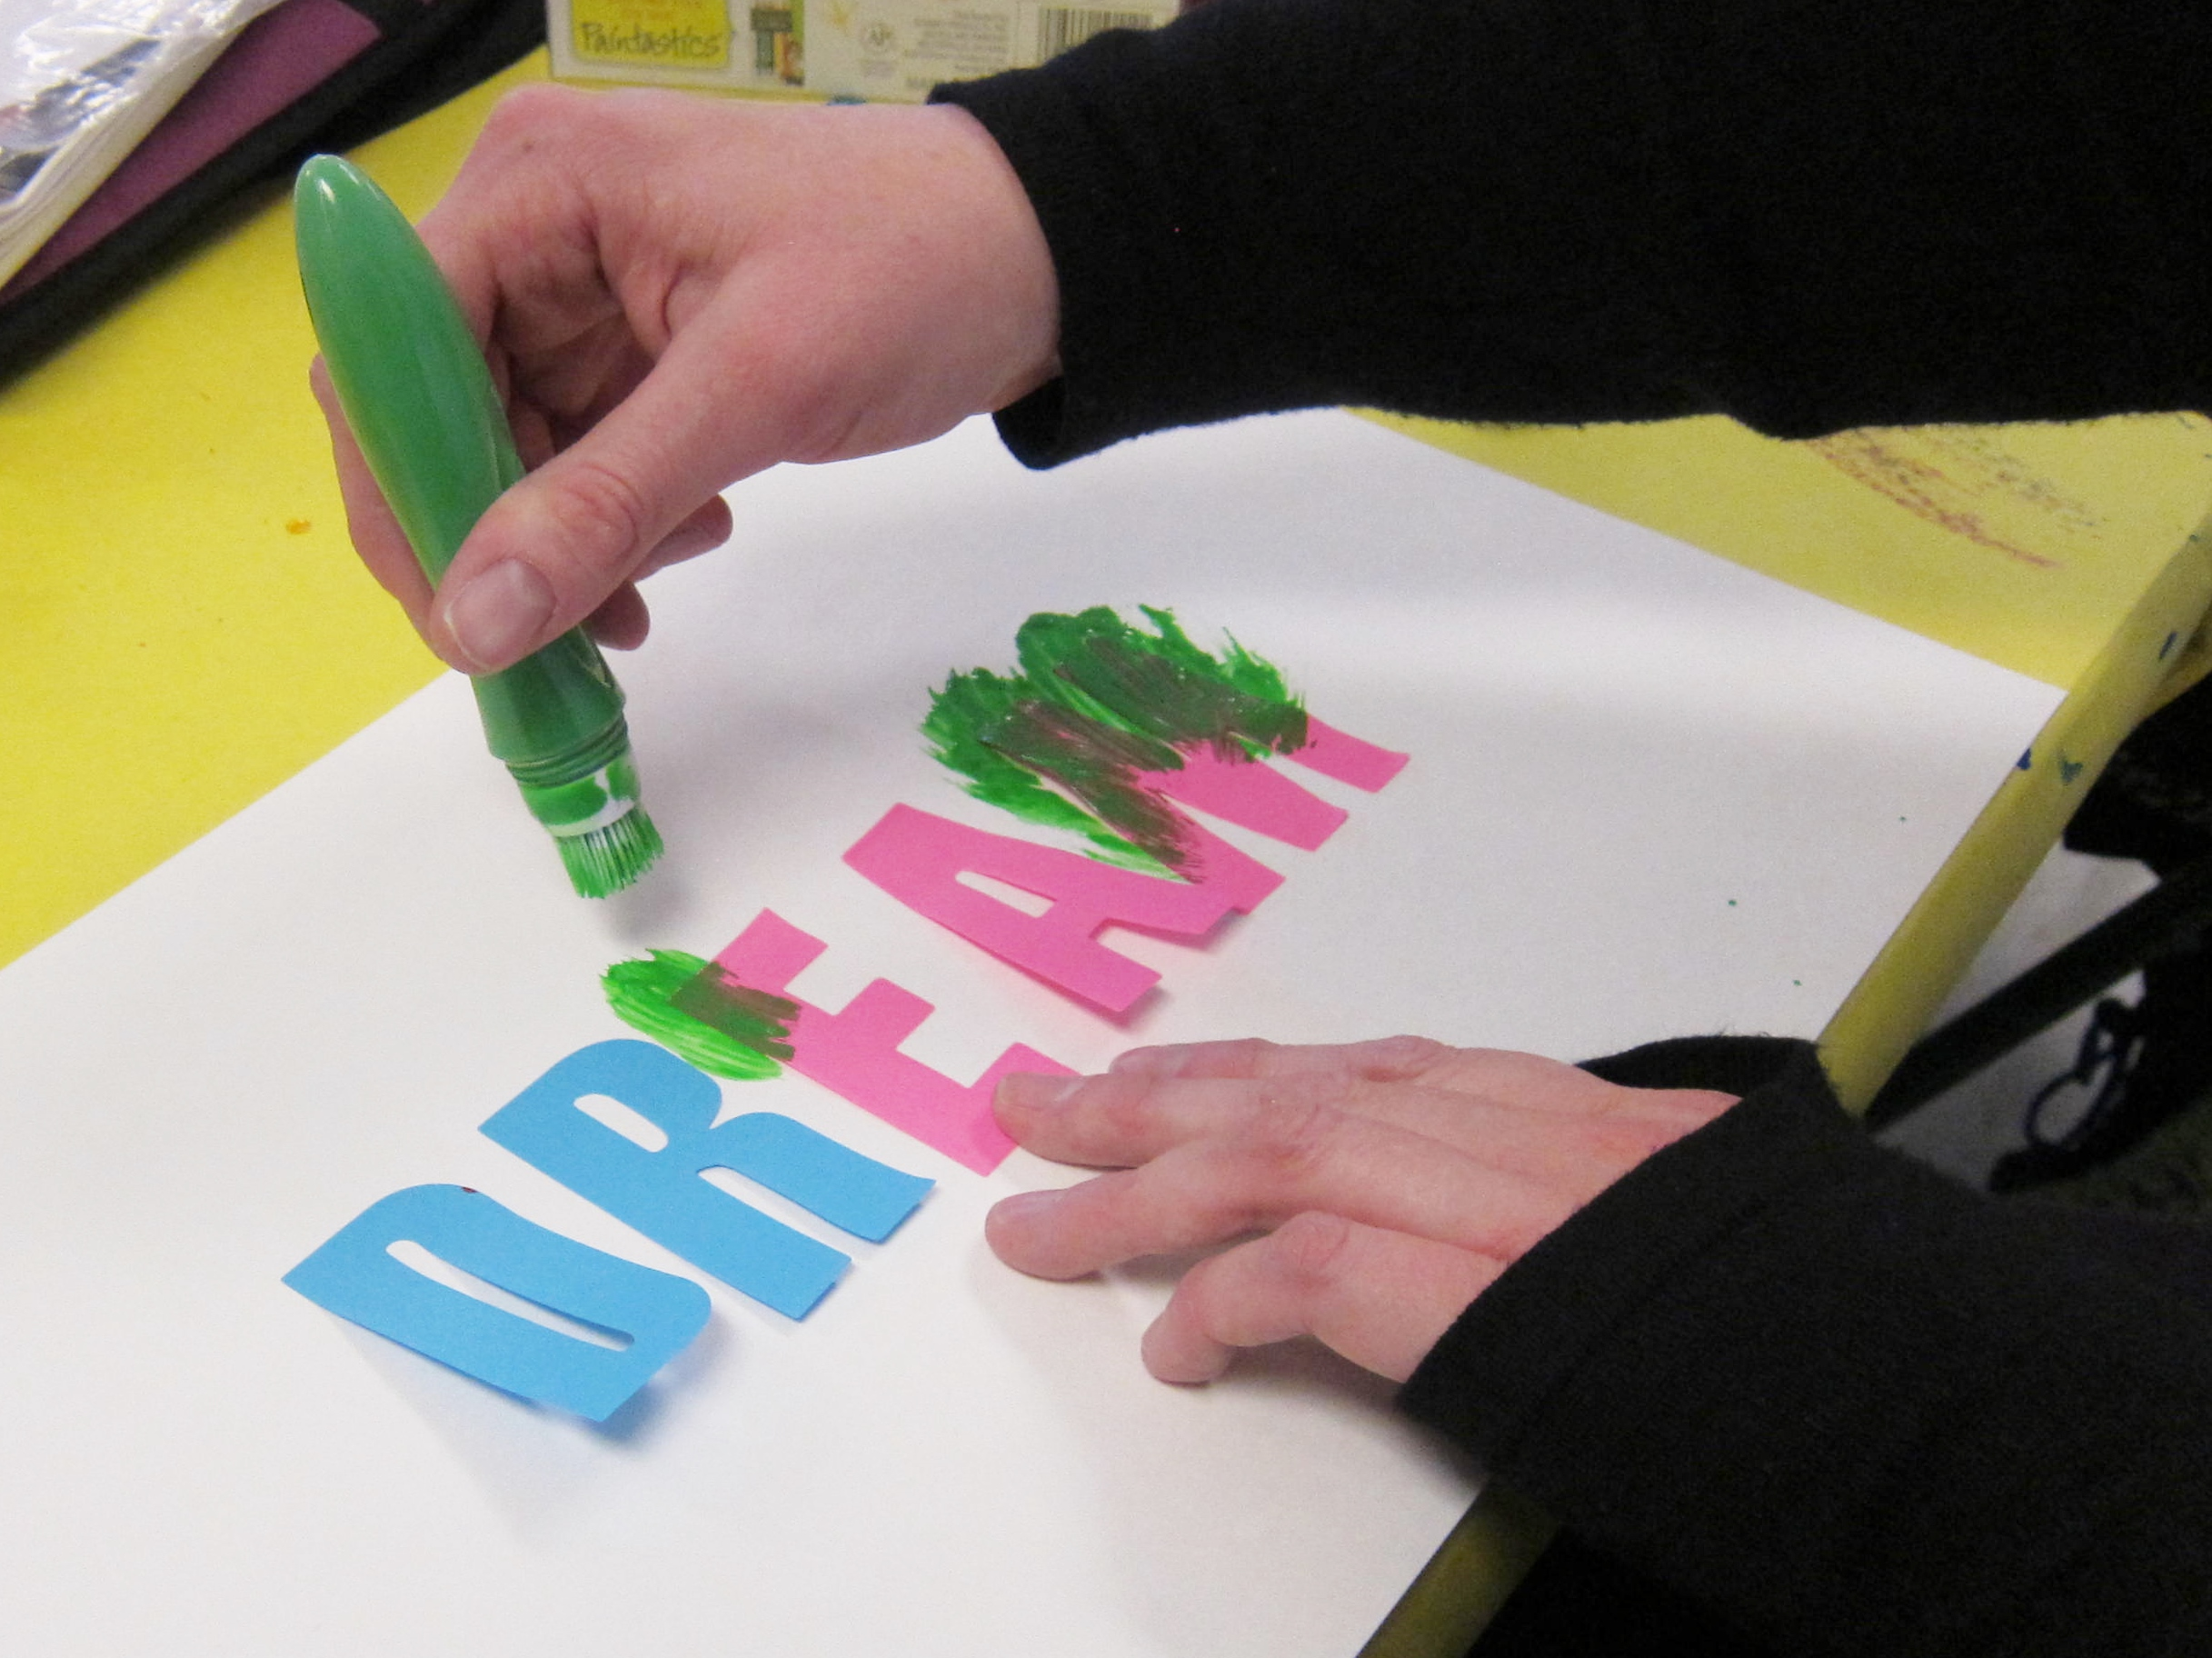 art with letters and words painting over adhesive letters With letters to paint over